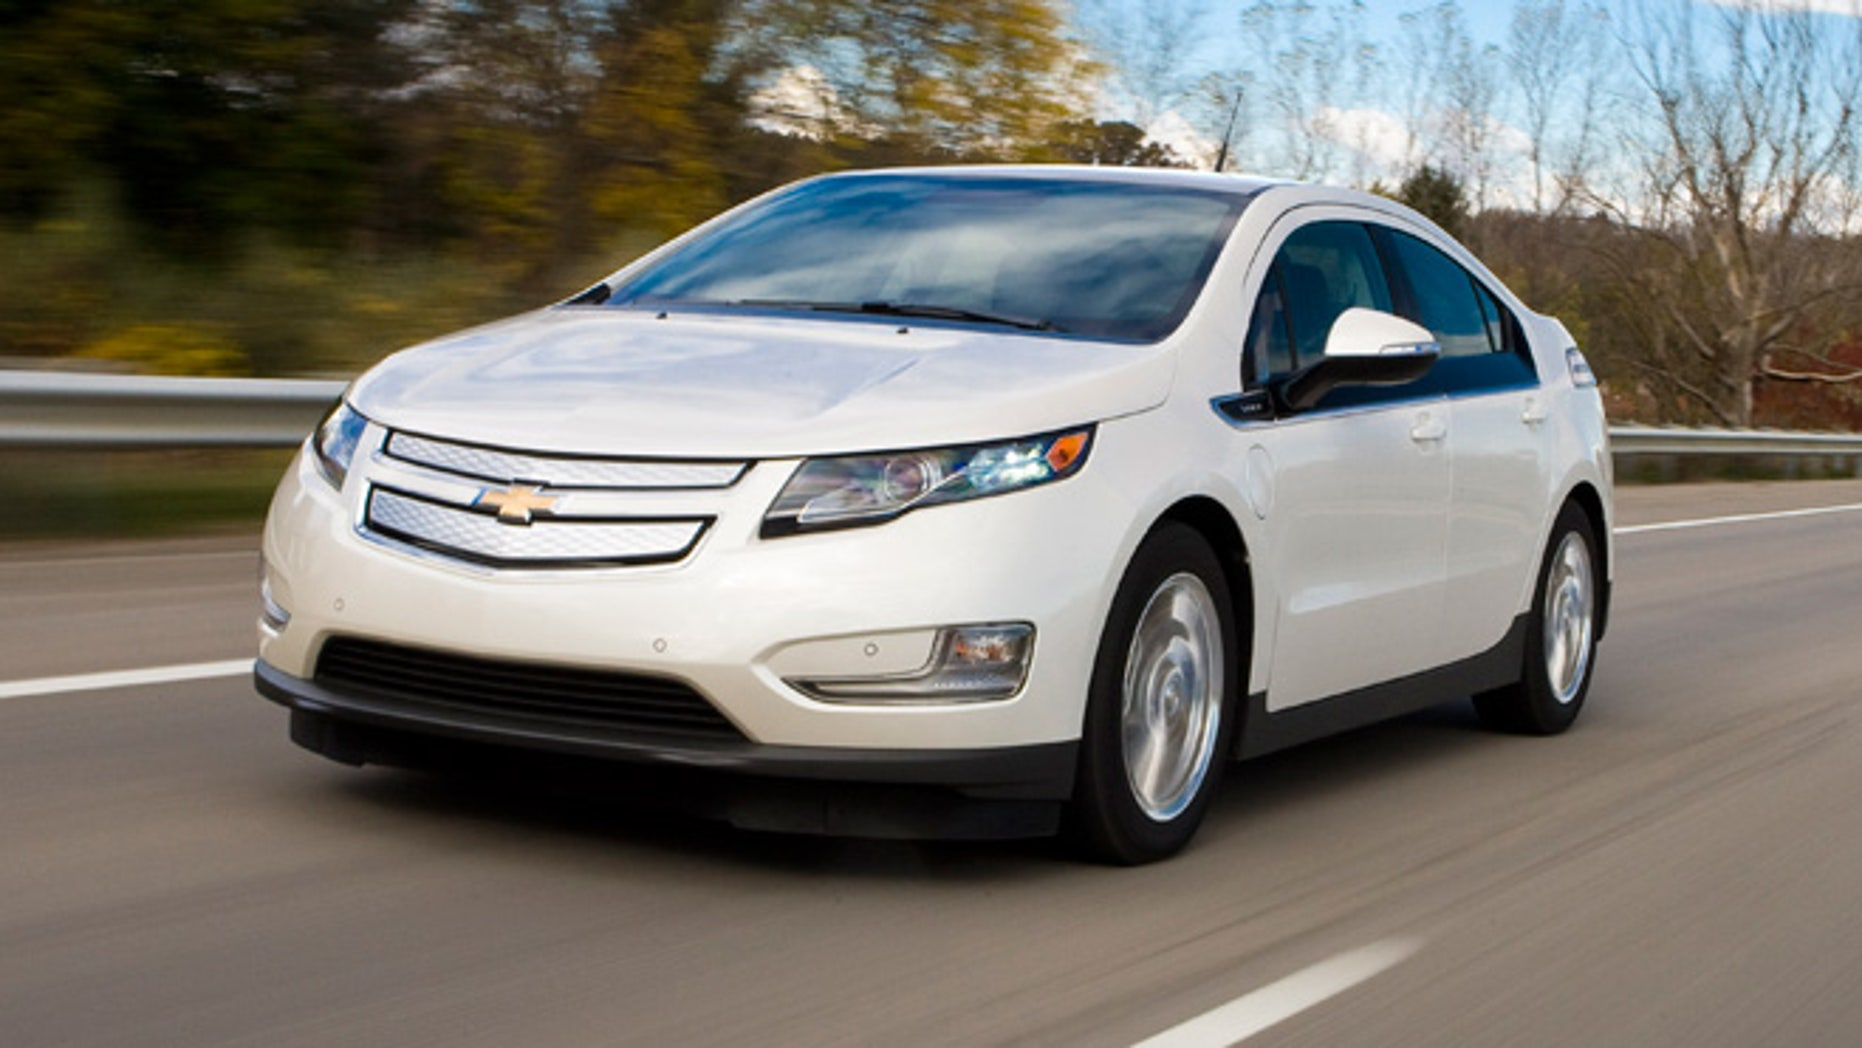 Chevy Volt Named Most Satisfying Car In Consumer Reports Survey